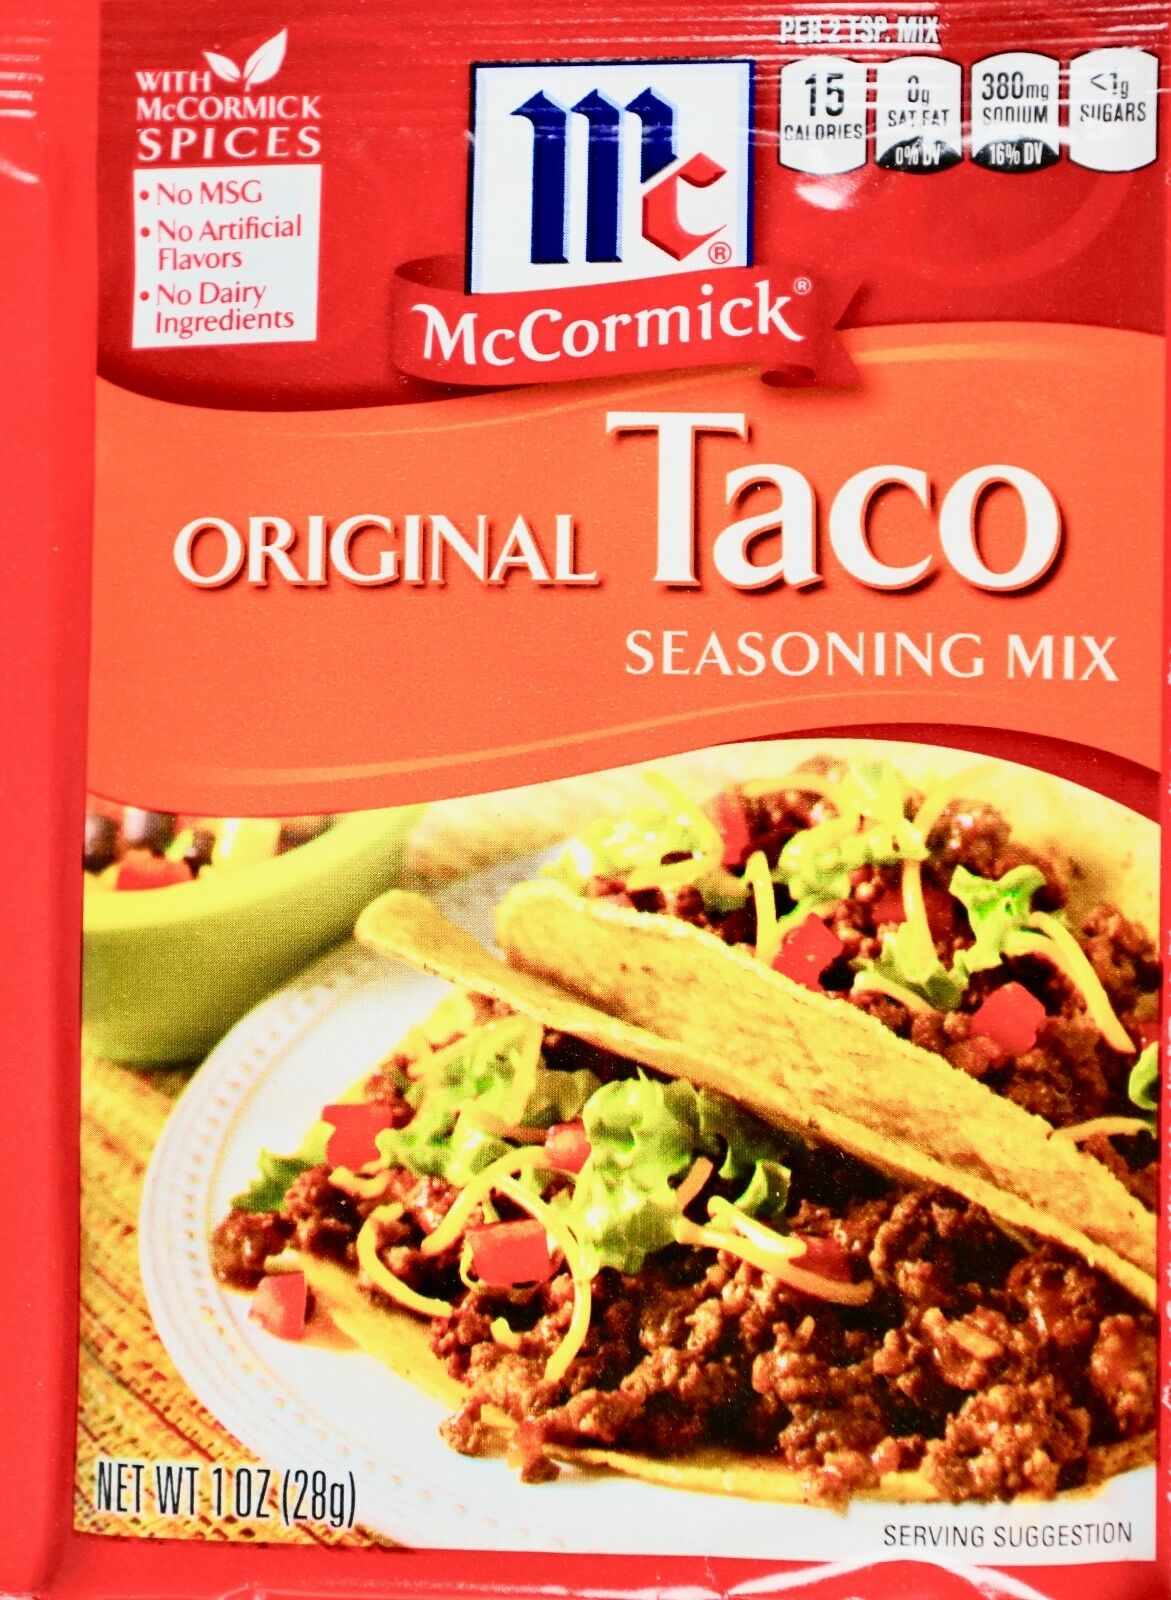 Mccormick Original Taco Seasoning Mix 12x1oz Pockets For Sale Online Ebay